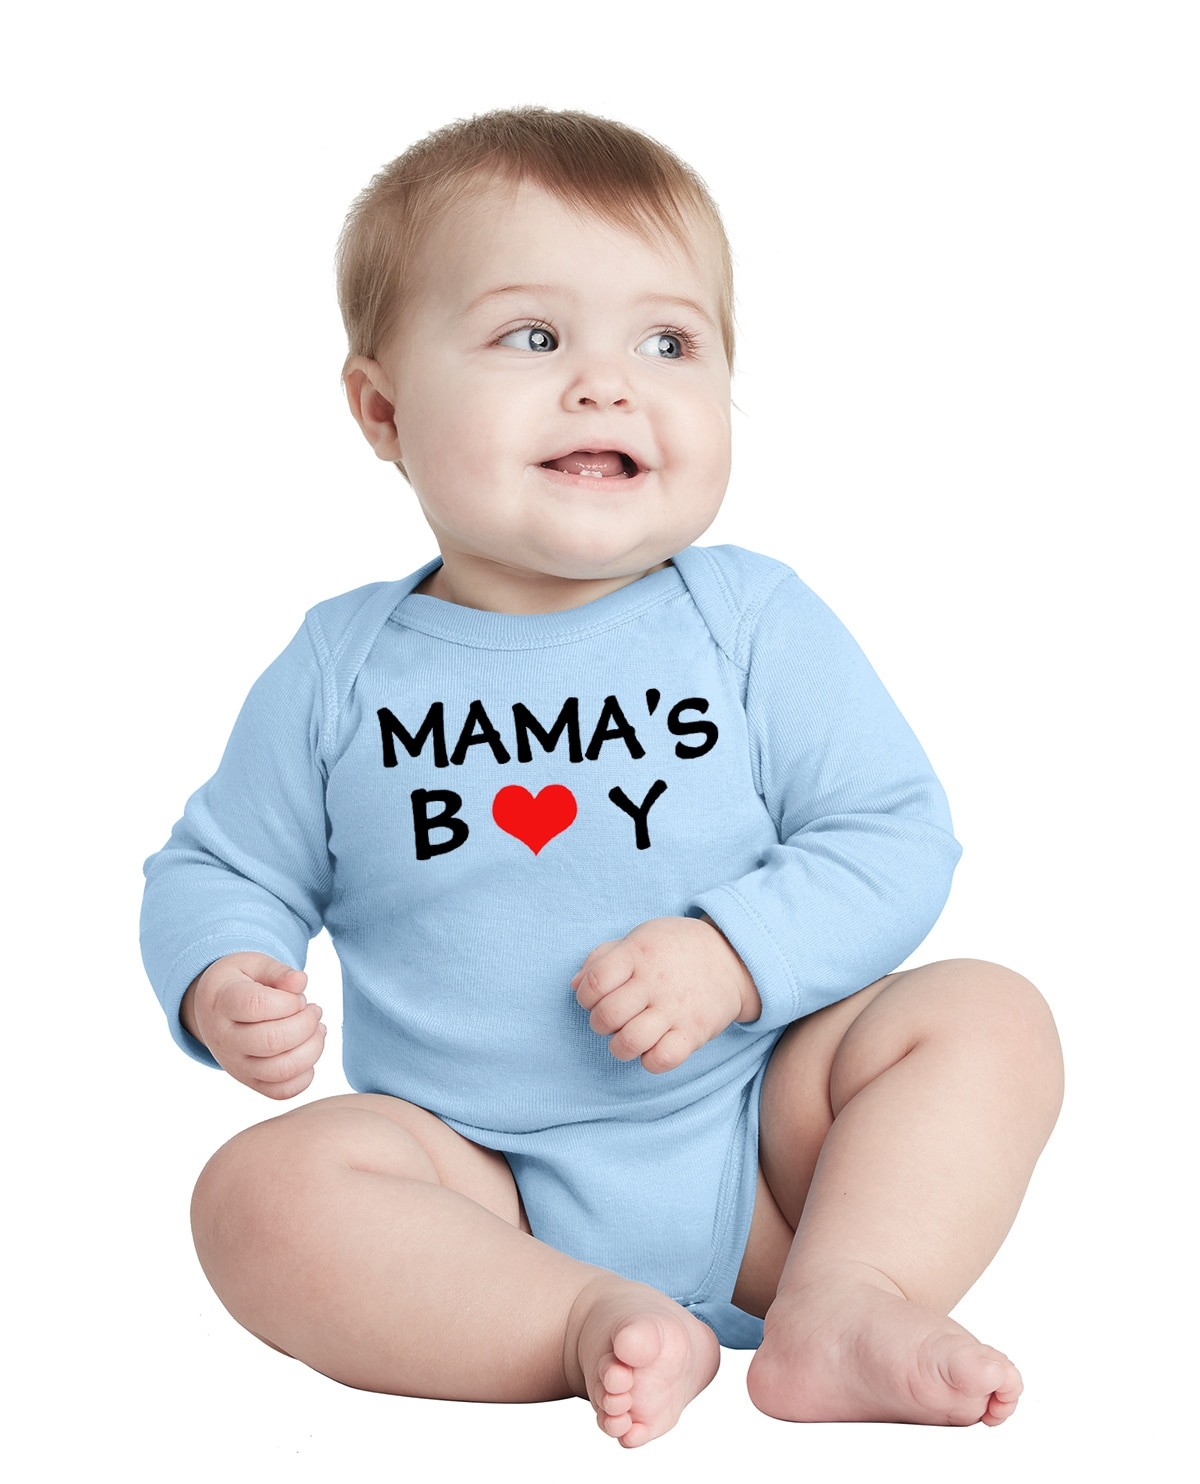 Infant Baby Boys Funny Romper Mama's Boy Print Clothing Toddler Long Sleeve Fashion Jumpsuit Infant